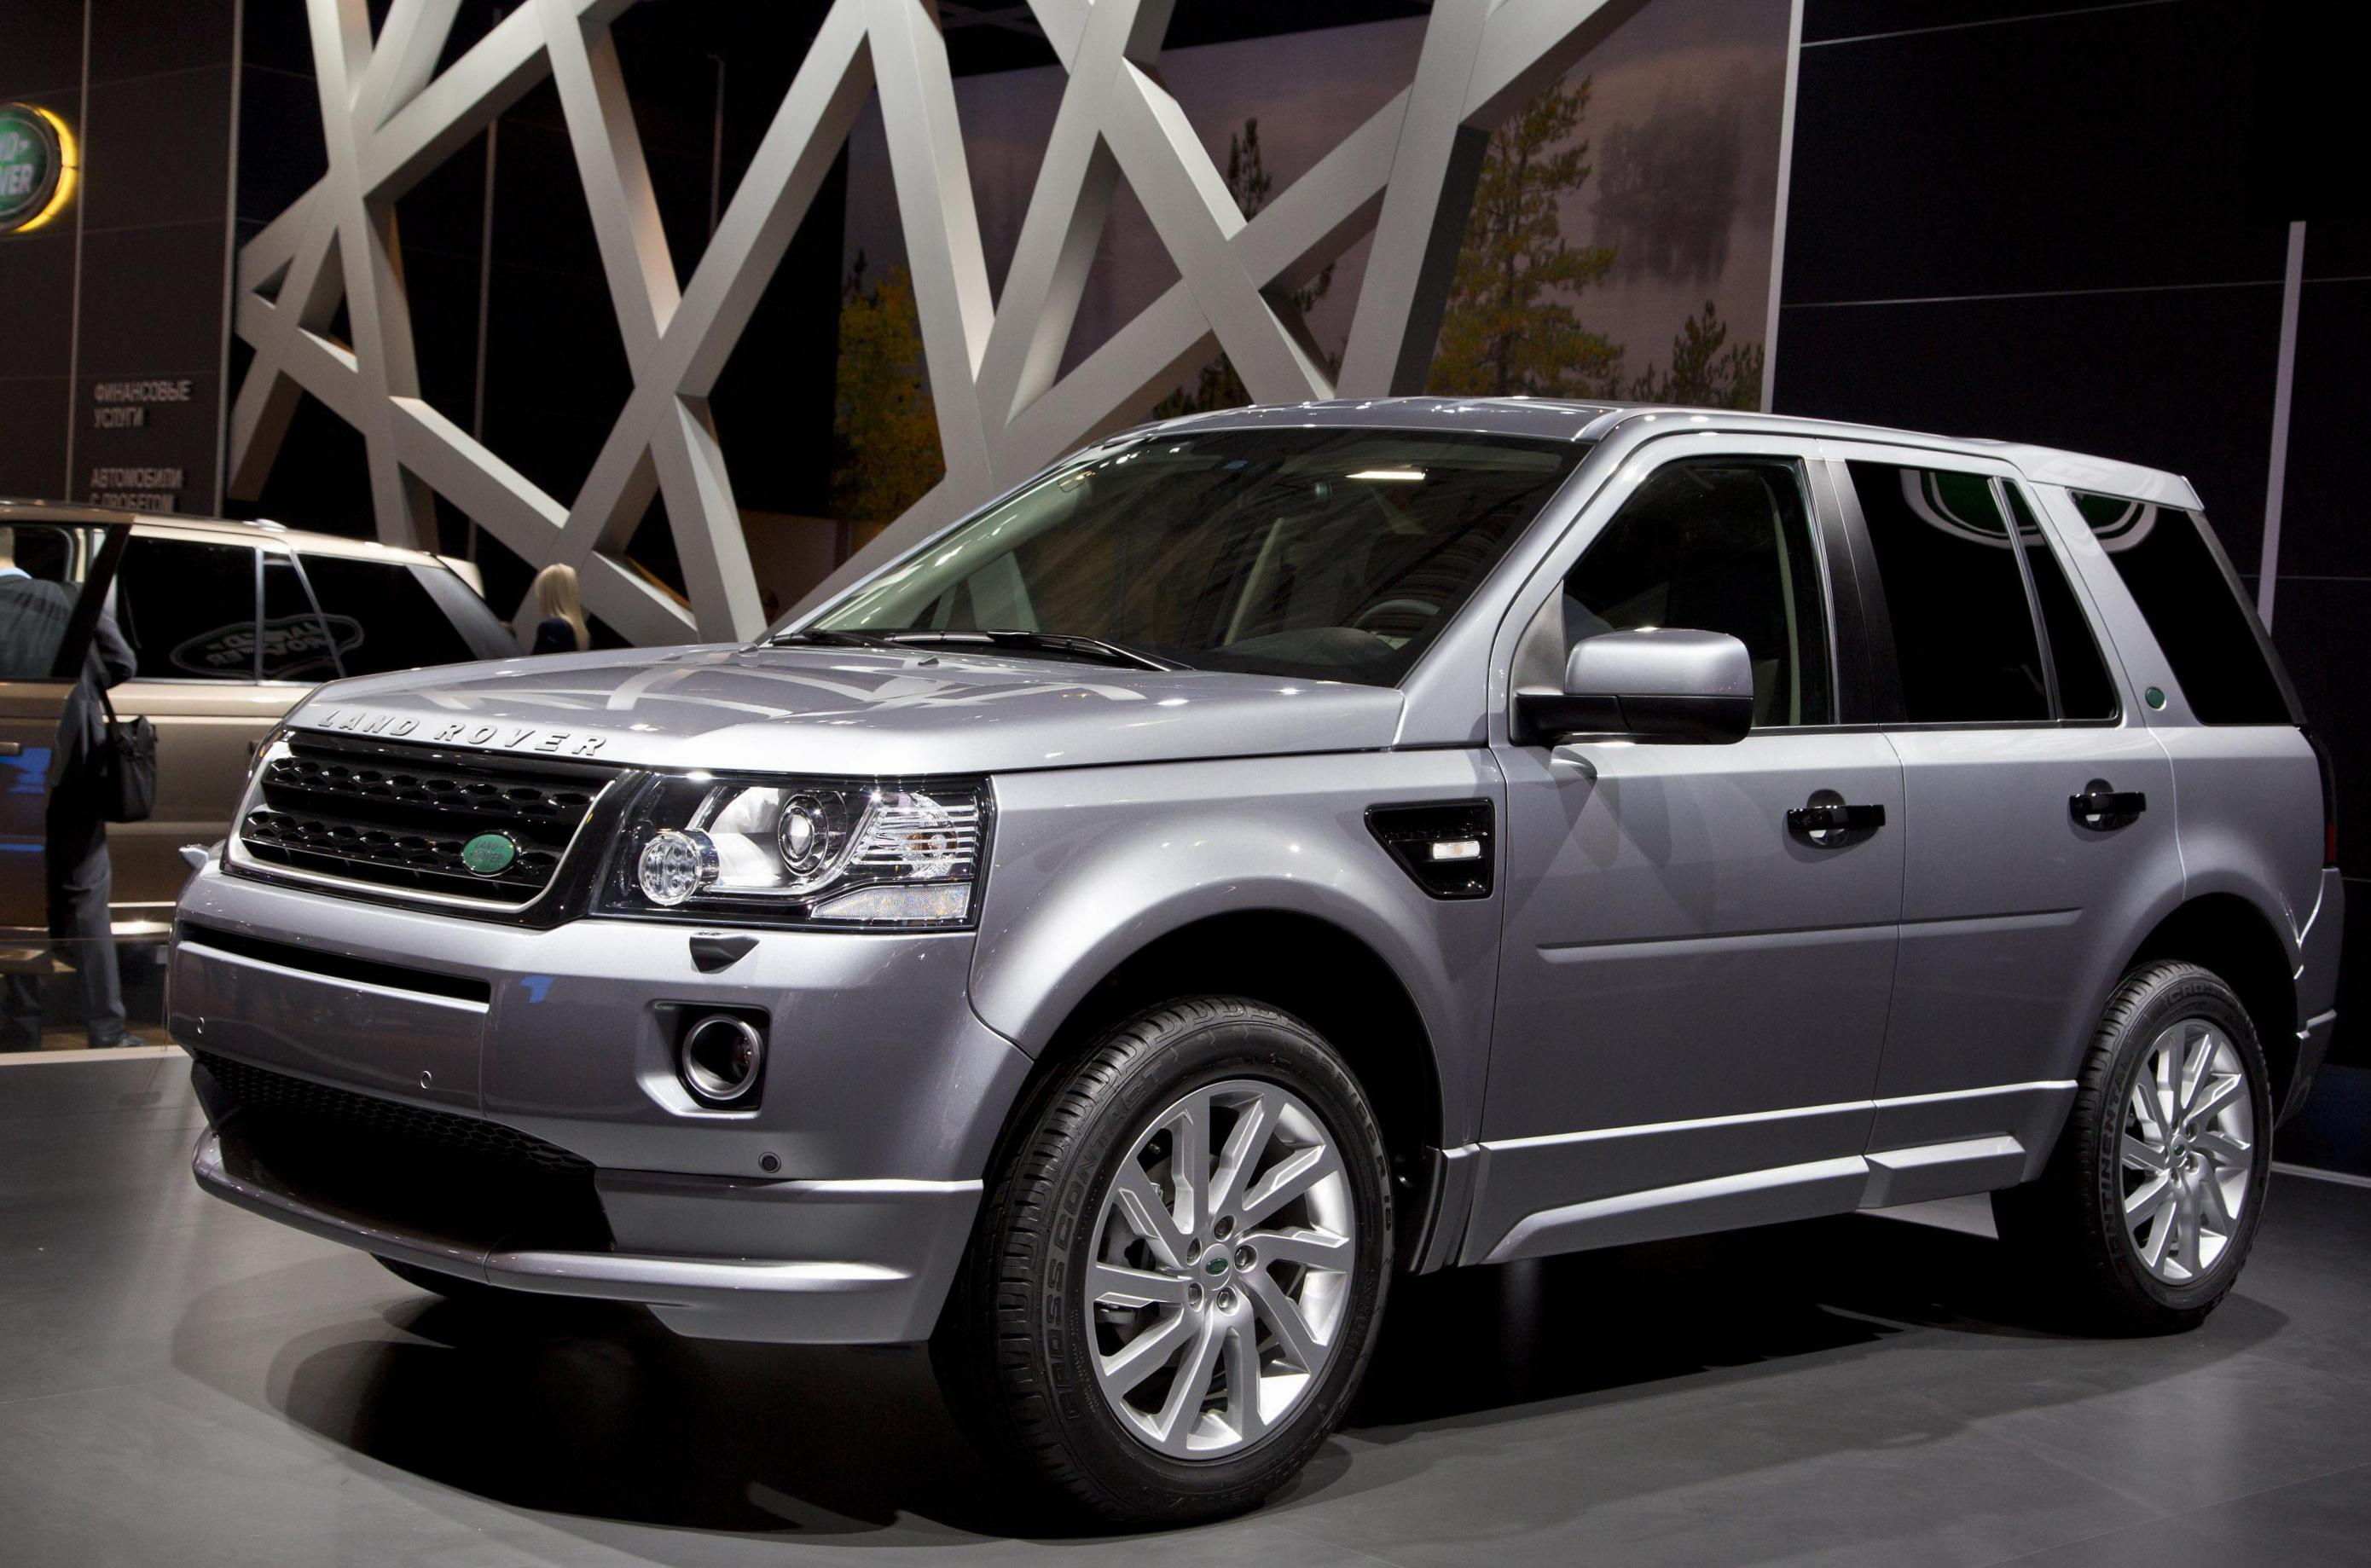 rover used mauritius for landrover freelander new land sale private price